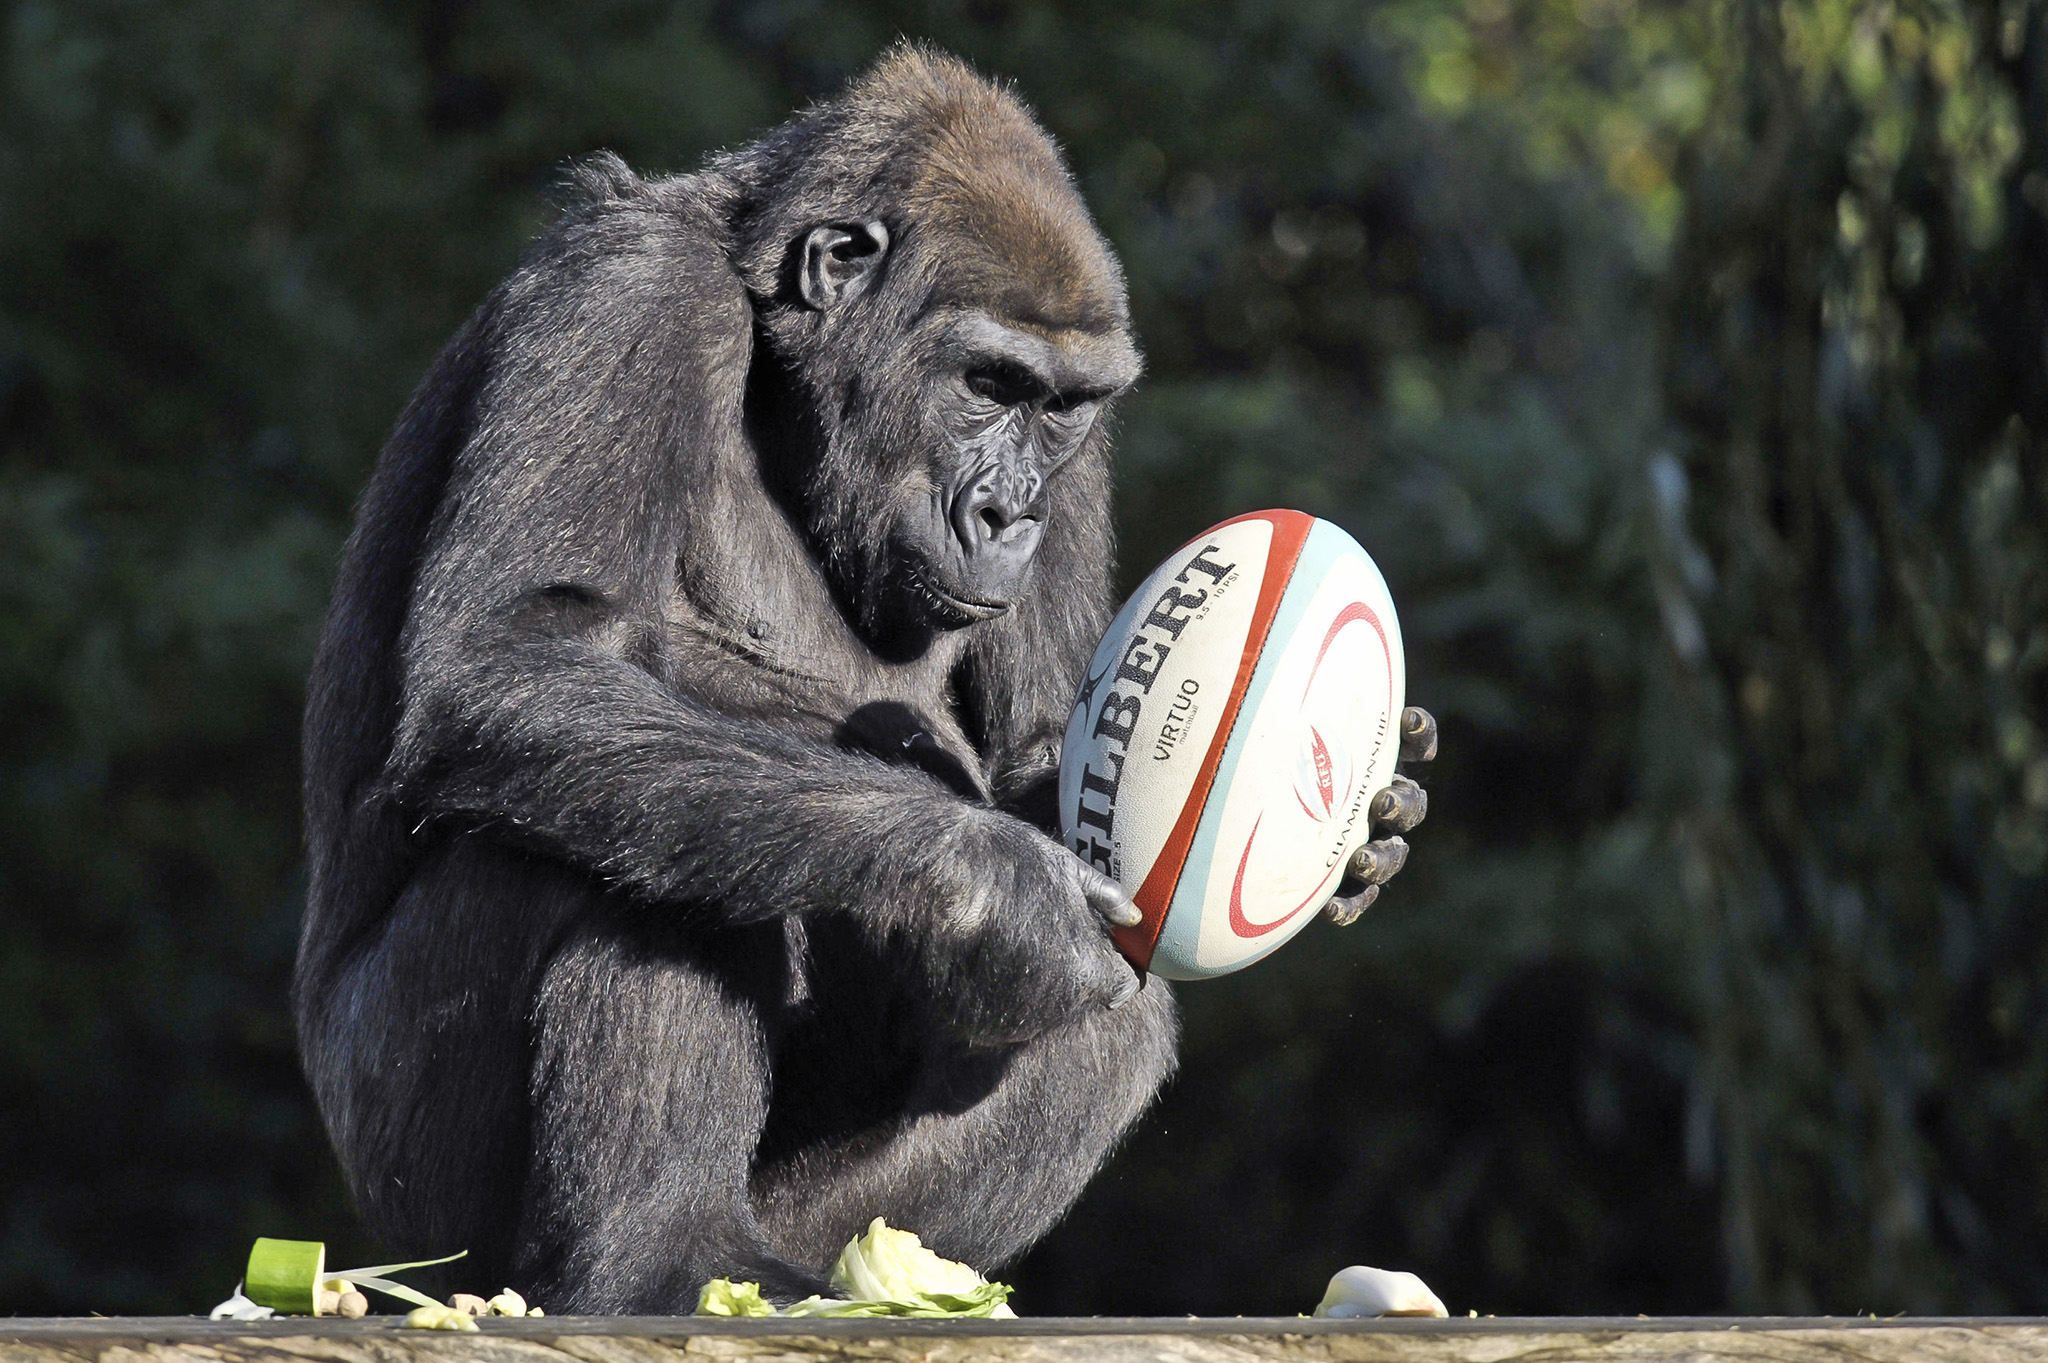 Gorillas with rugby balls